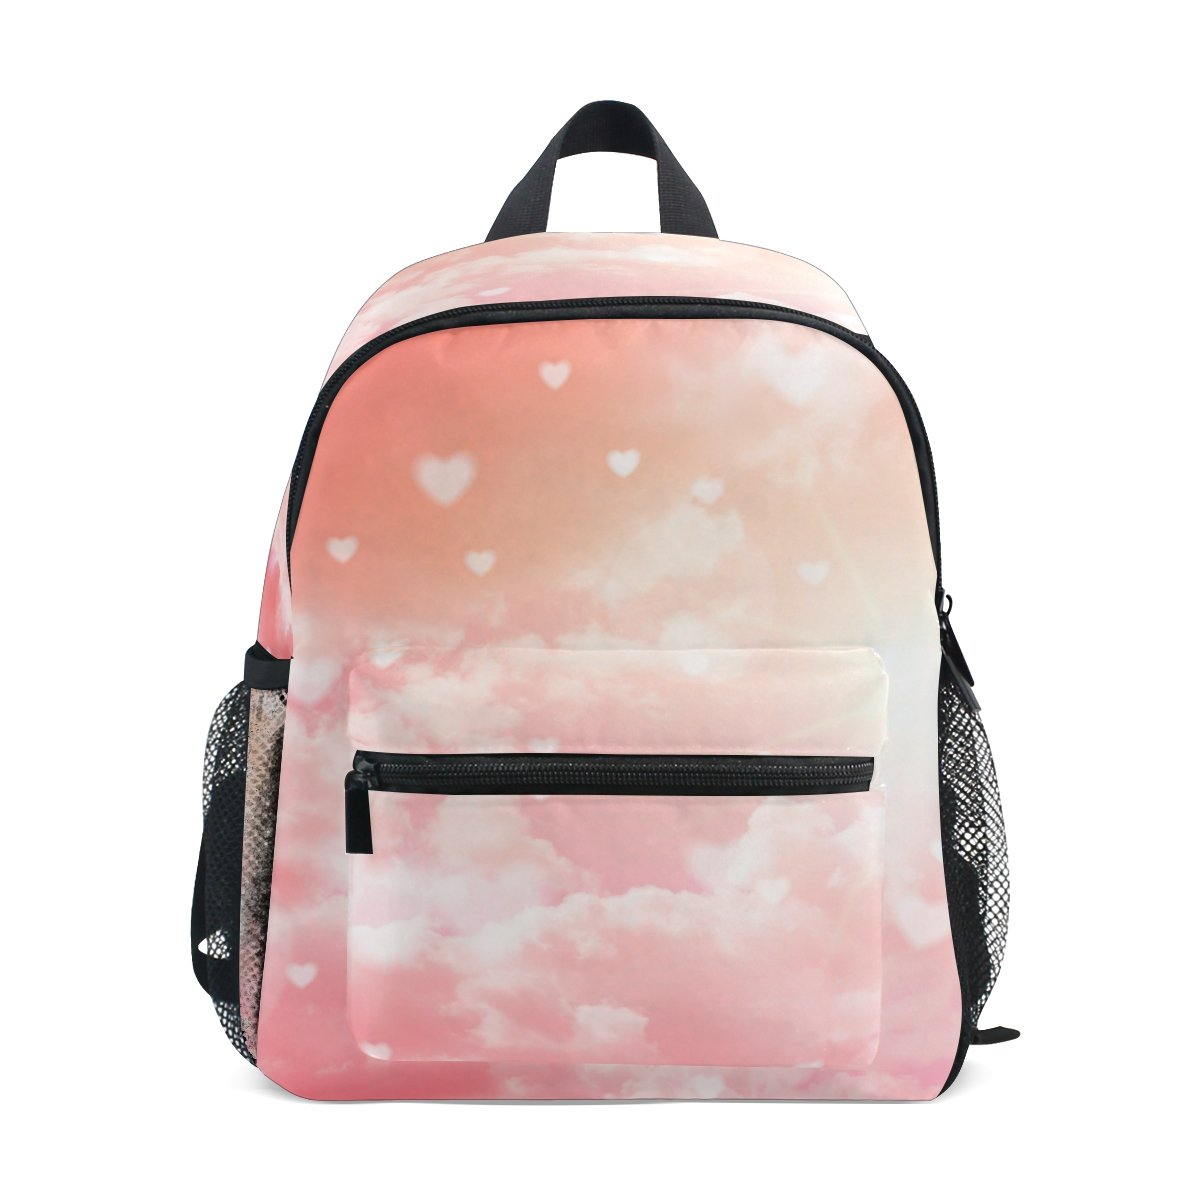 My Daily Kids Backpack Hearts Clouds Valentine's Day Wedding Nursery Bags for Preschool Children